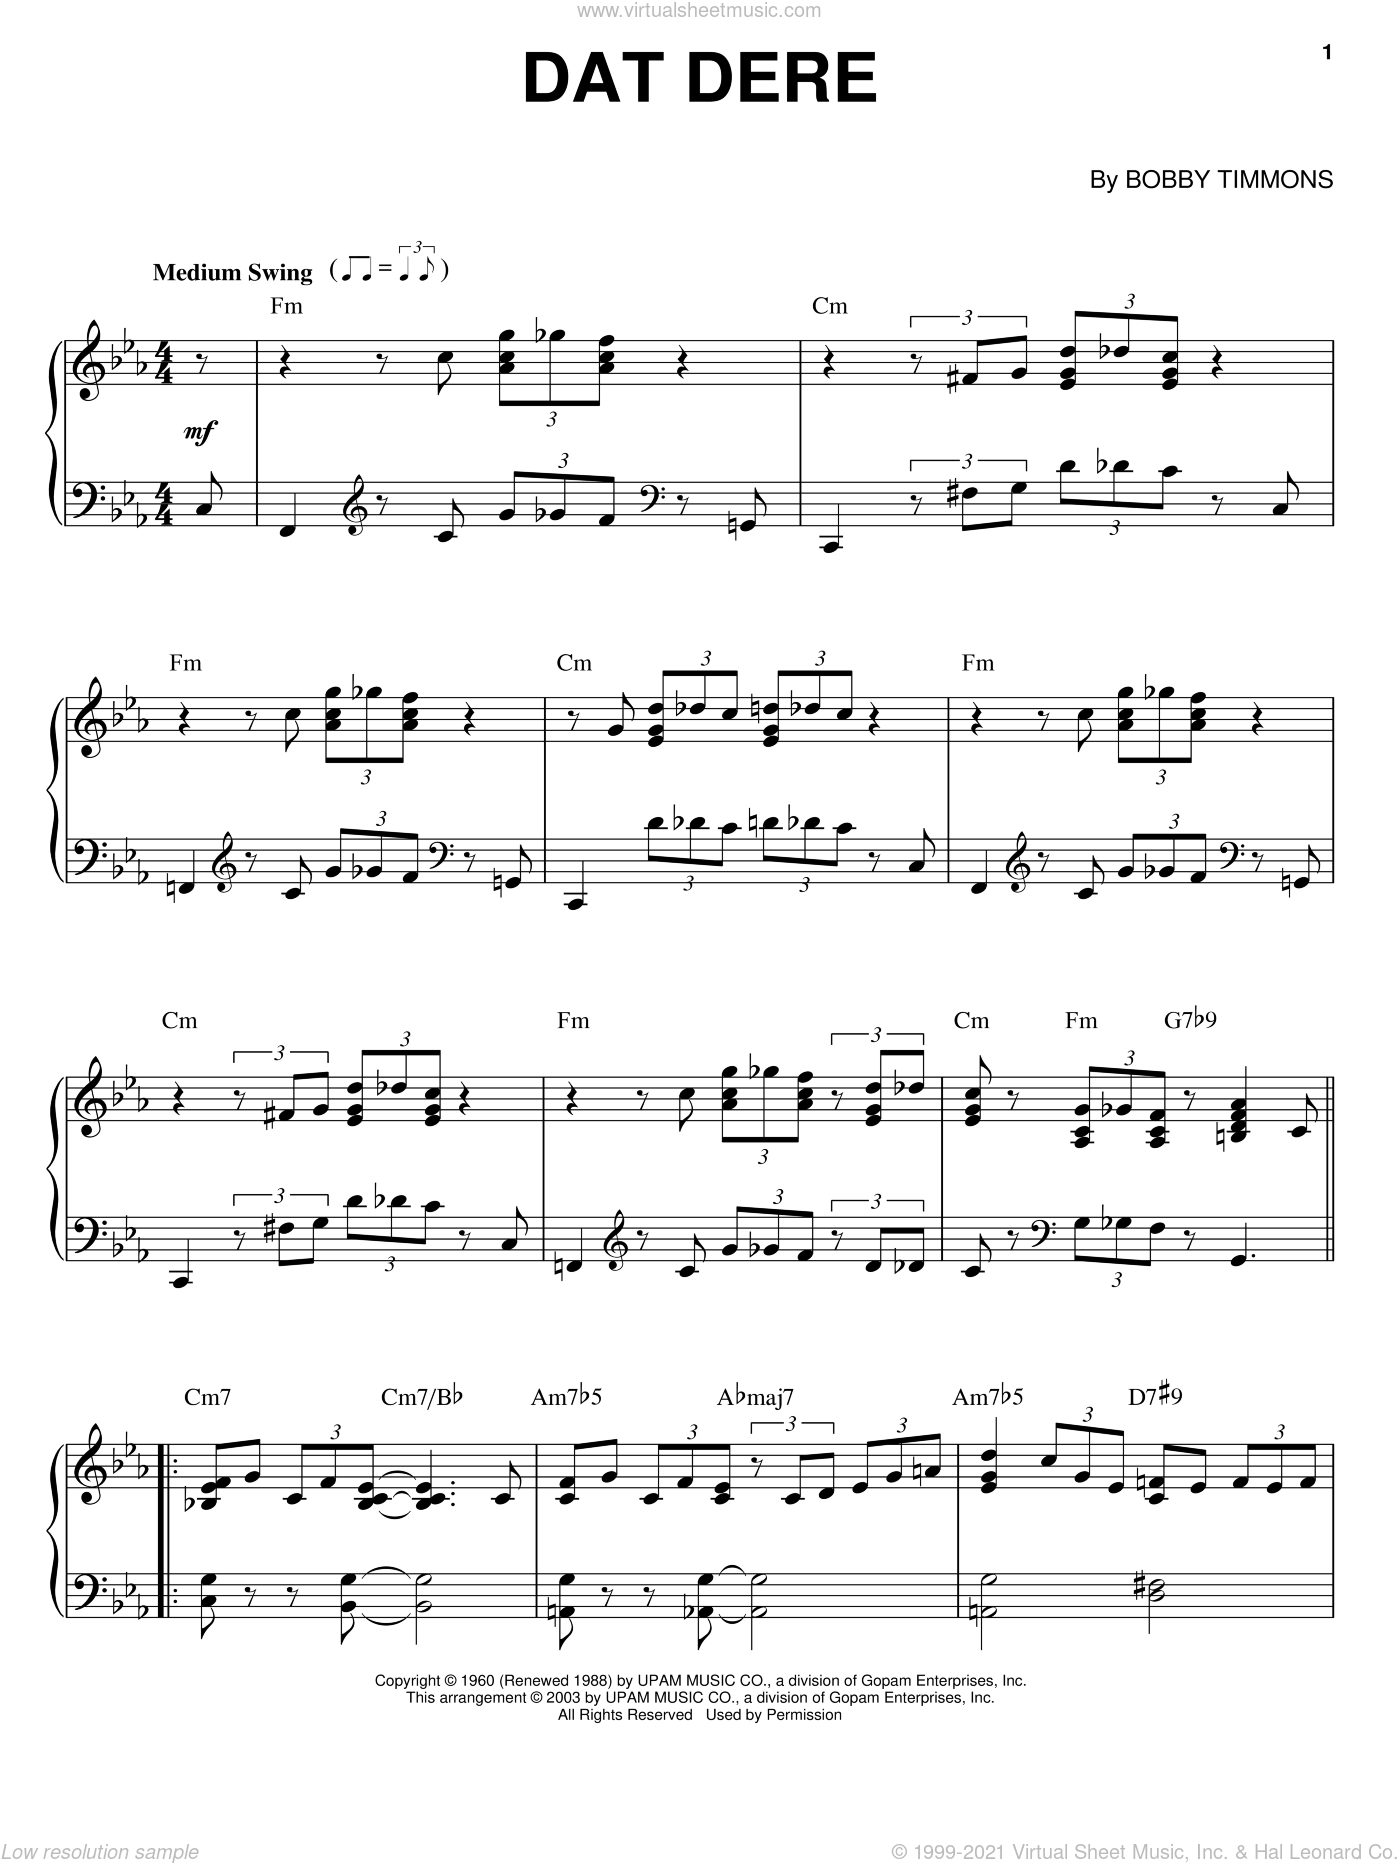 Dat Dere sheet music for piano solo by Oscar Brown, Jr., Cannonball Adderley and Bobby Timmons